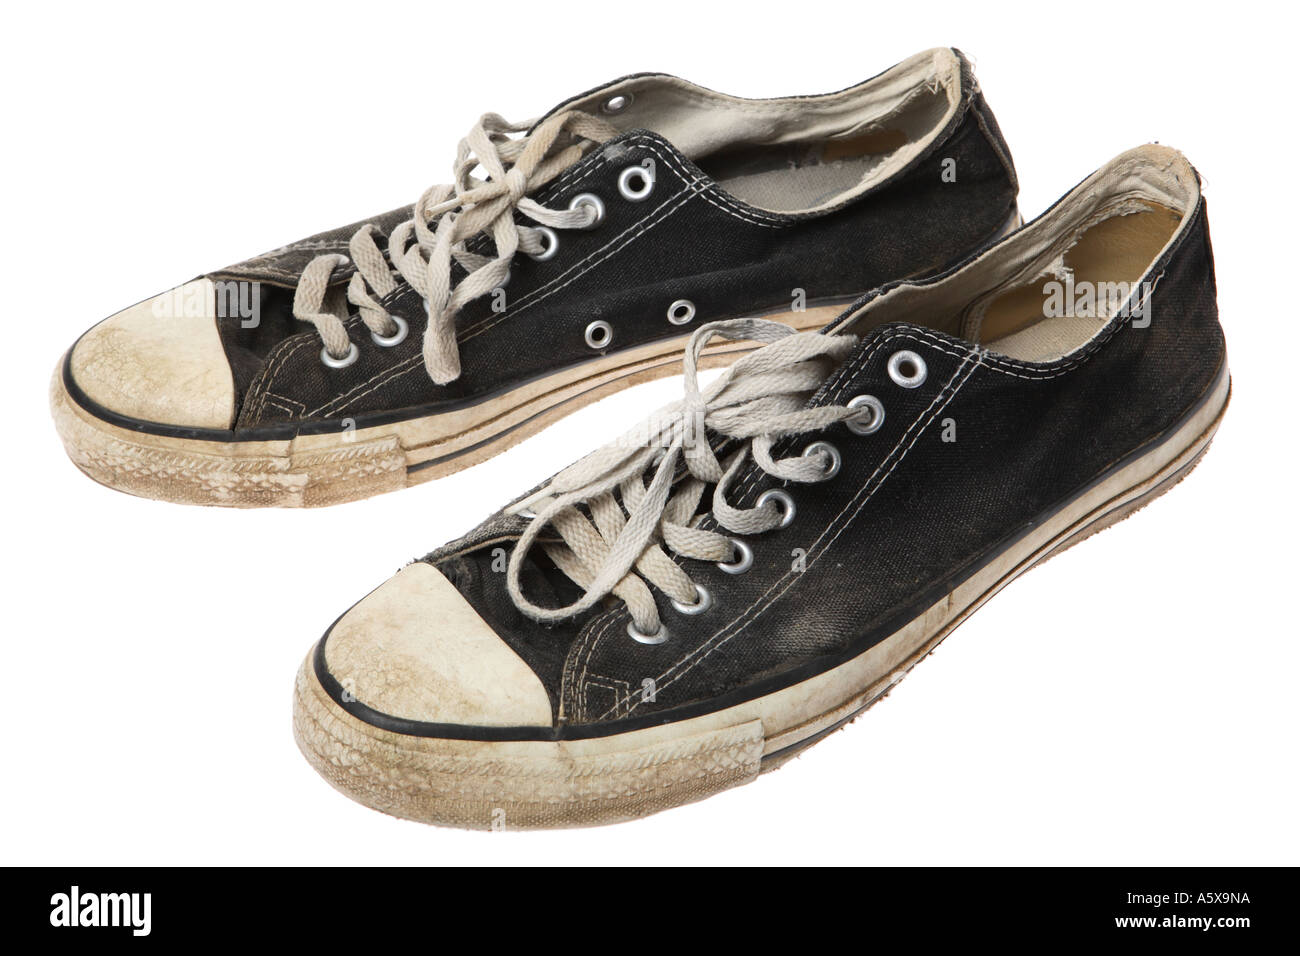 Old sneakers - Stock Image